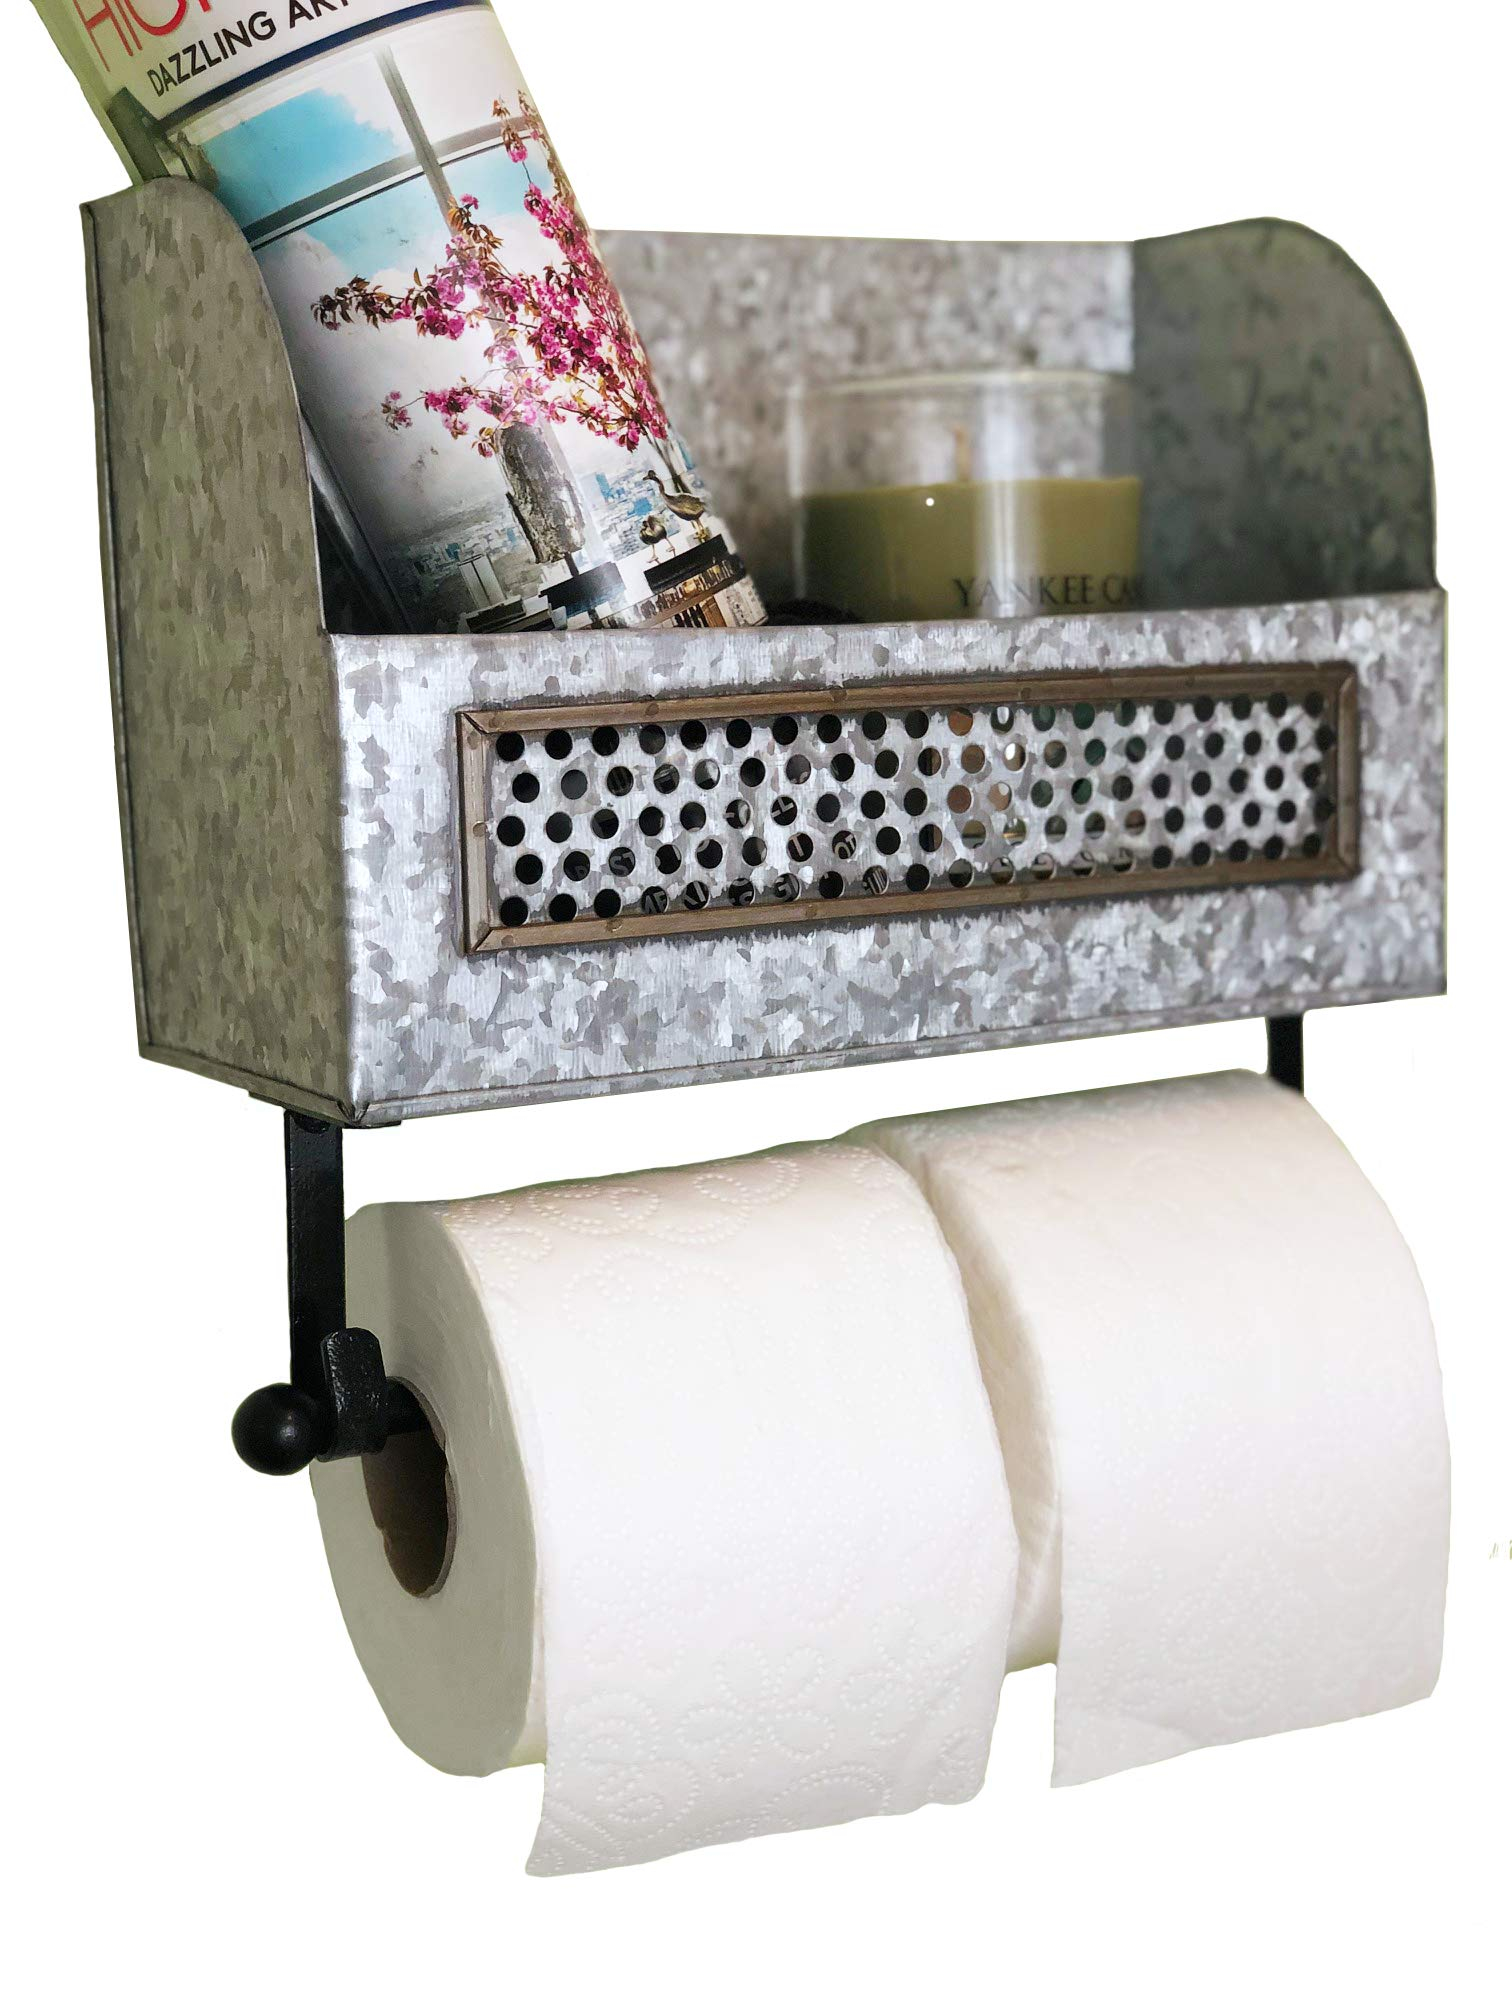 Autumn Alley Farmhouse Galvanized Double Roll Toilet Paper Holder with Shelf   Magazine Rack   Sturdy and Stylish Holder Adds Farmhouse Warmth and Organization by Autumn Alley